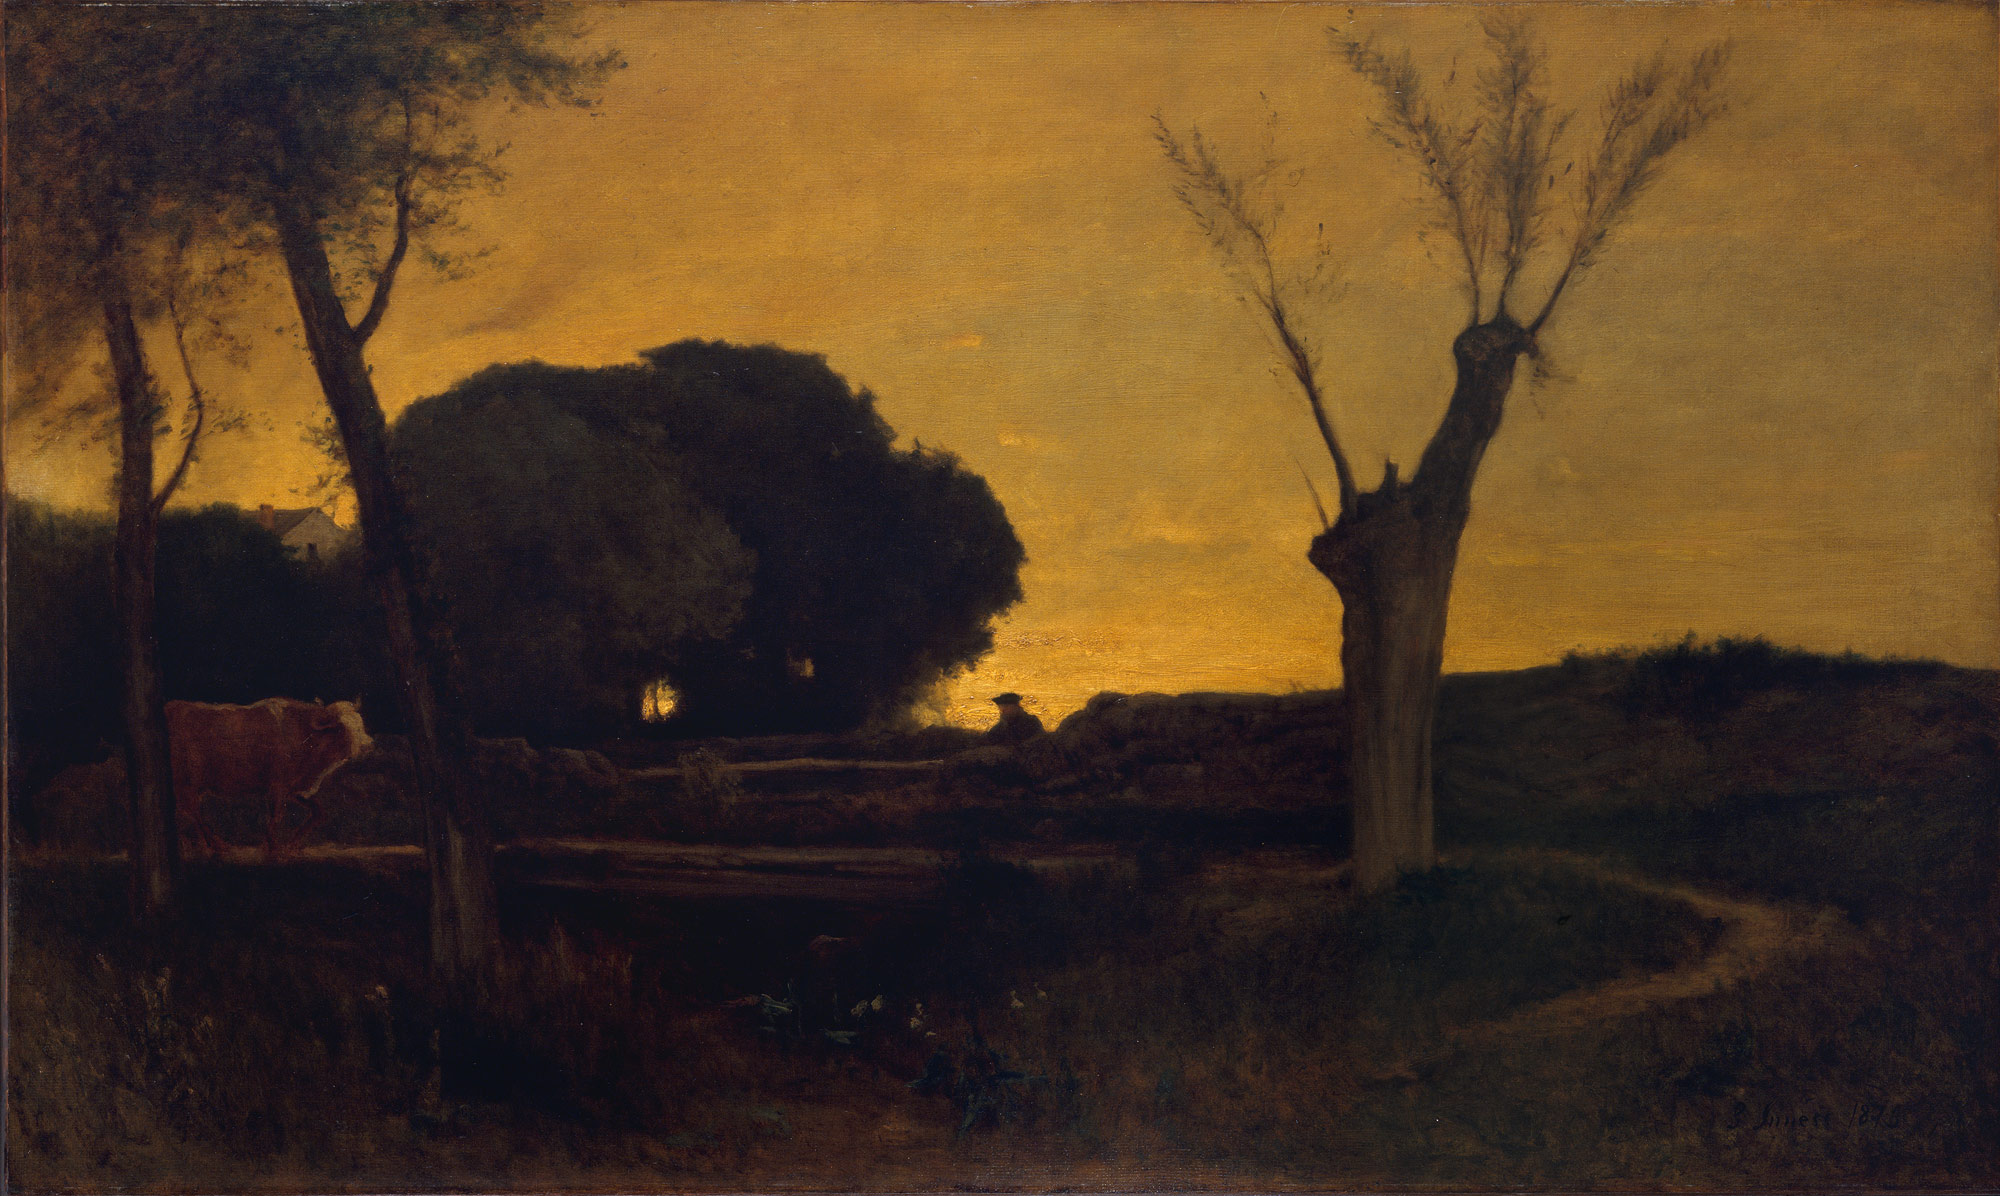 Nocturne paintings: Evening at Medfield by George Inness.